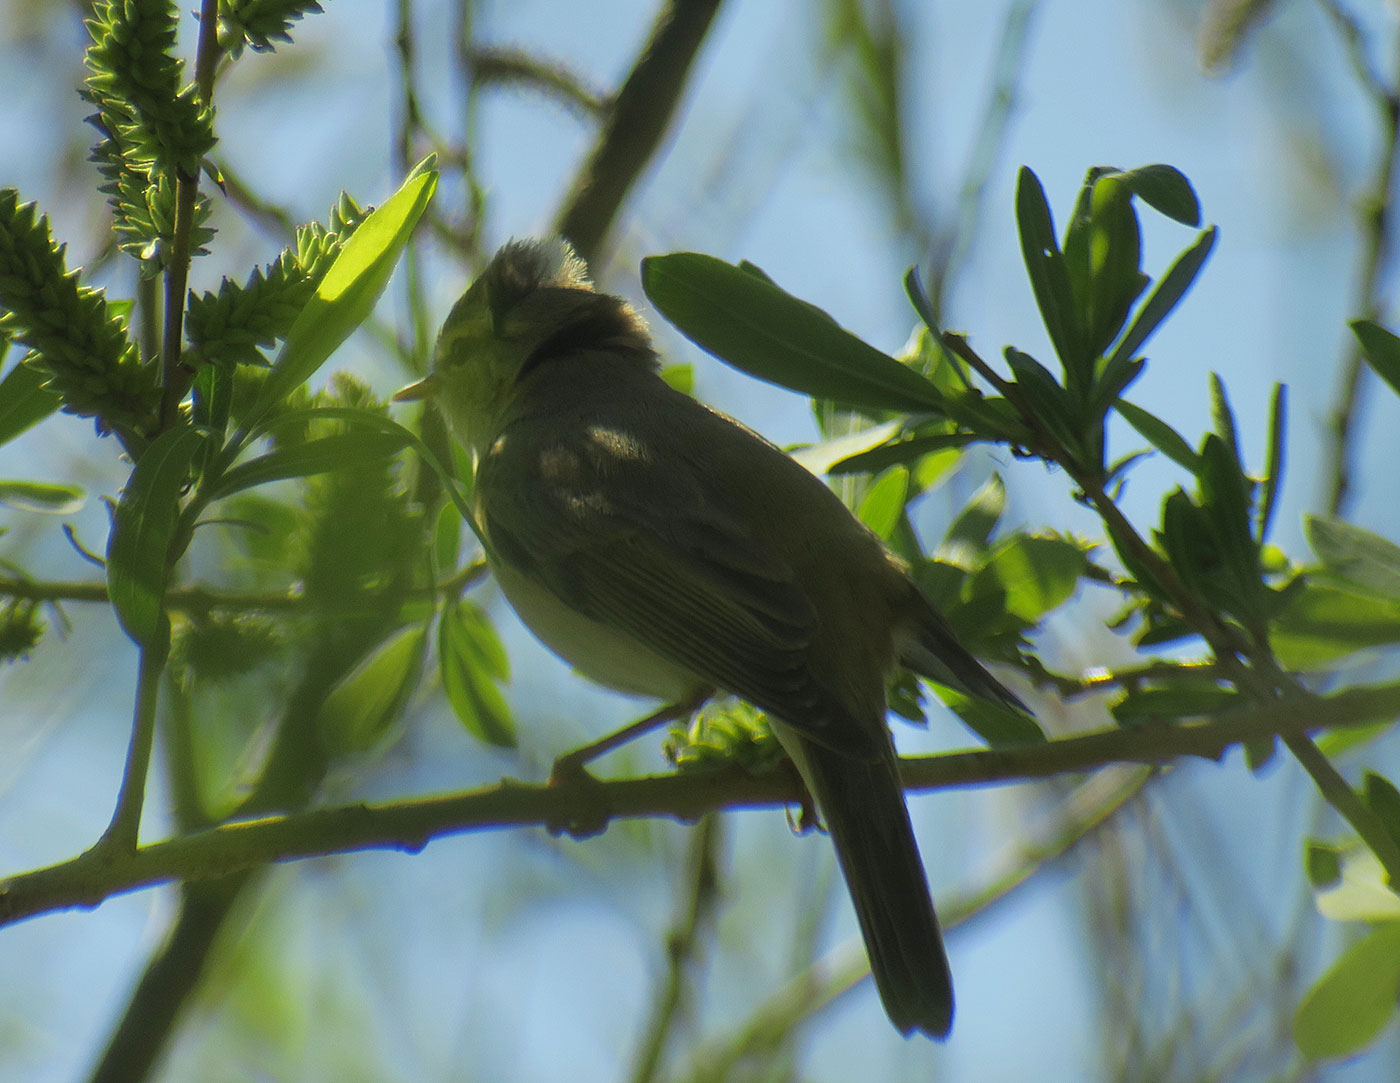 13_fitis_willow-warbler_kieswerk_2019-04-19_9066